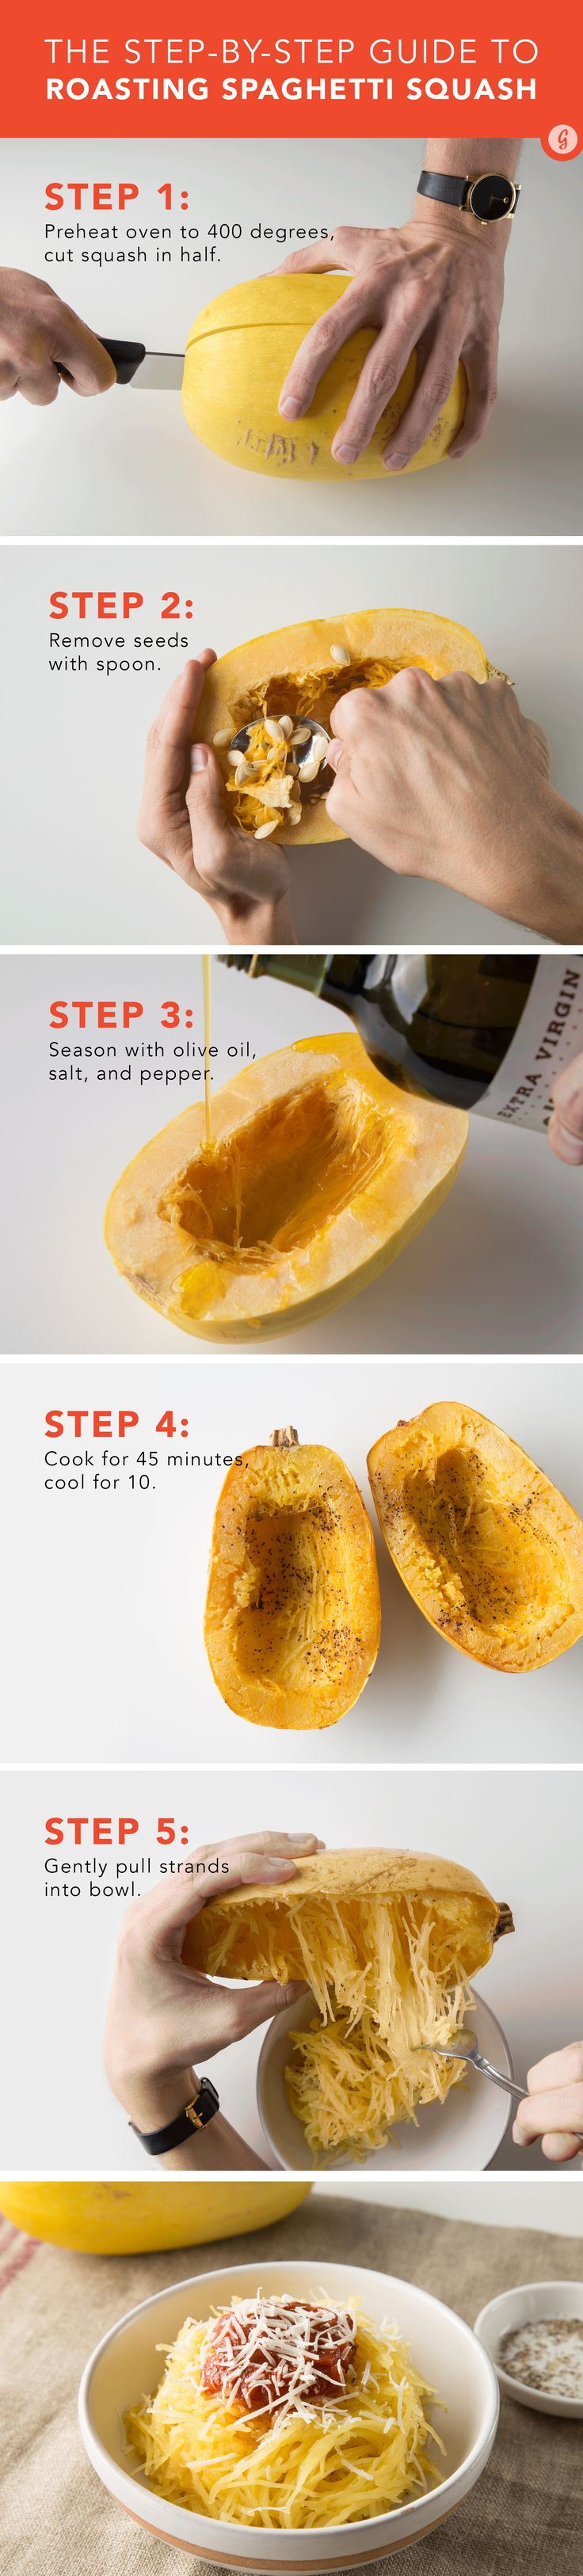 If you're sticking to a low-carb diet, starchy noodles don't exactly fit the bill. #spaghettisquash #stepbystep http://greatist.com/eat/how-to-cook-spaghetti-squash